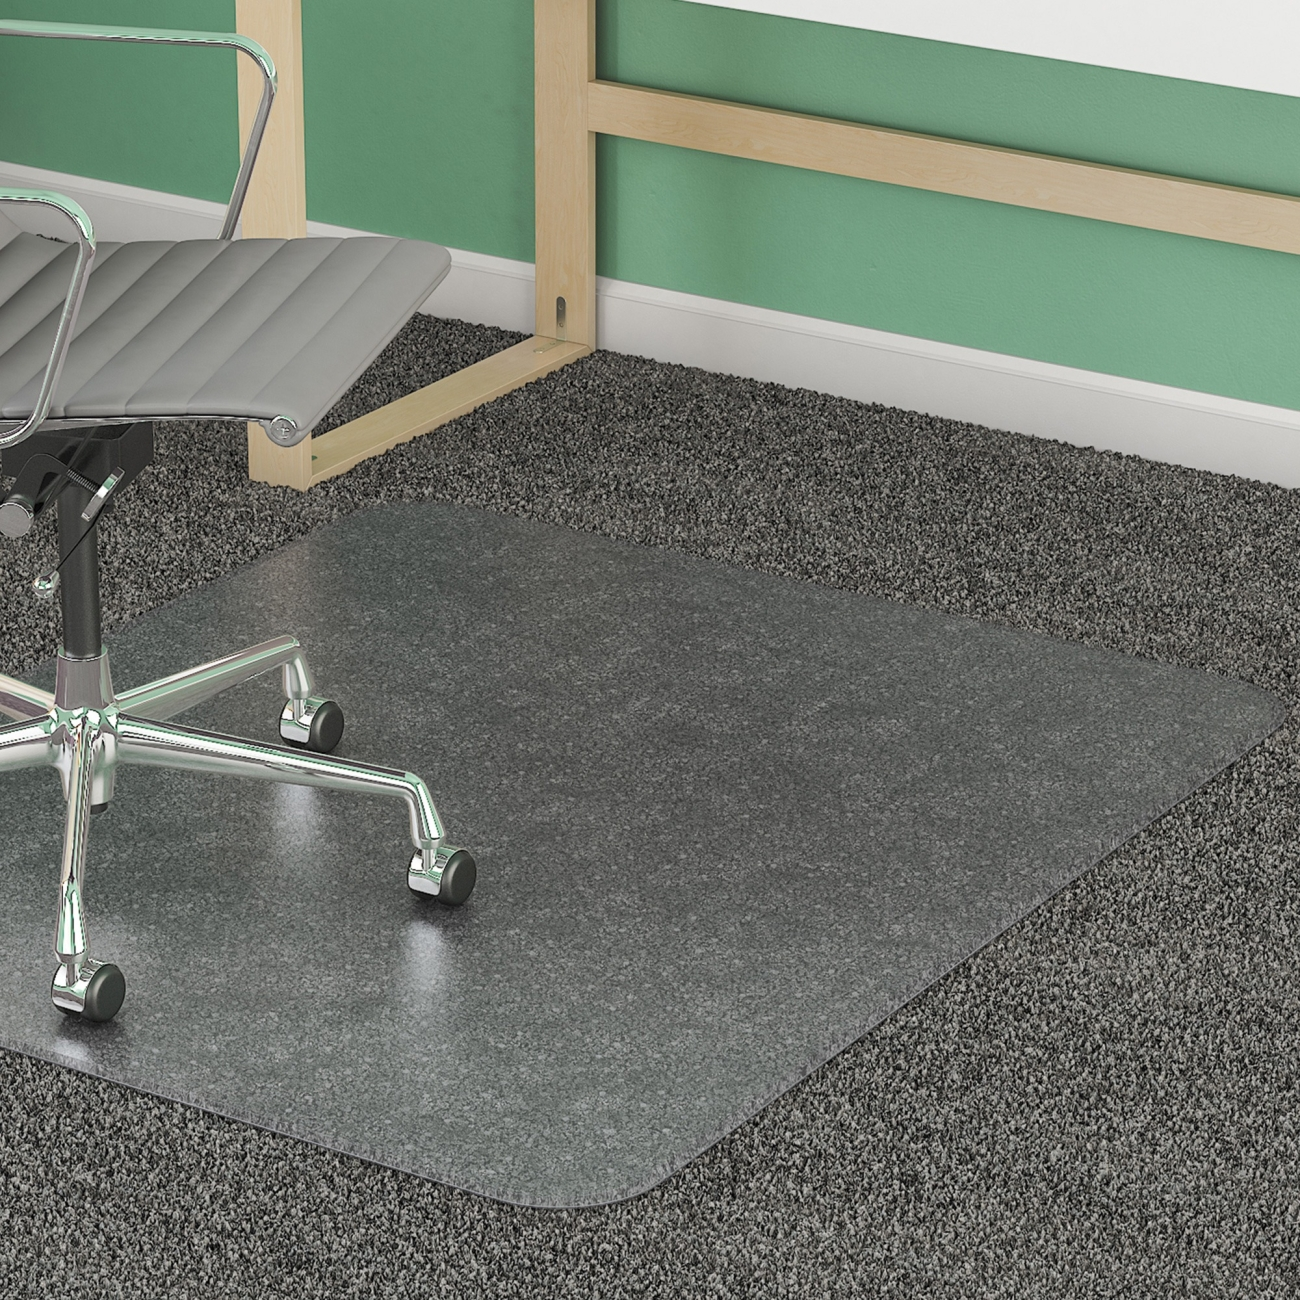 Chair Mat For Thick Carpet Anchormat 250 Best Chair Mat For Home Chair Mats